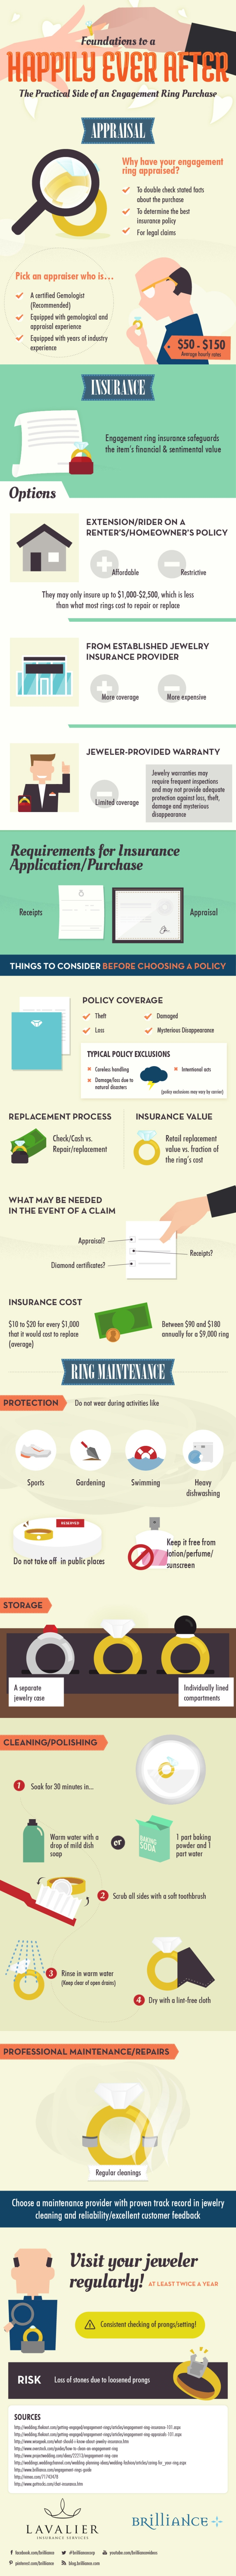 Jewelry Wedding Insurance Infographic